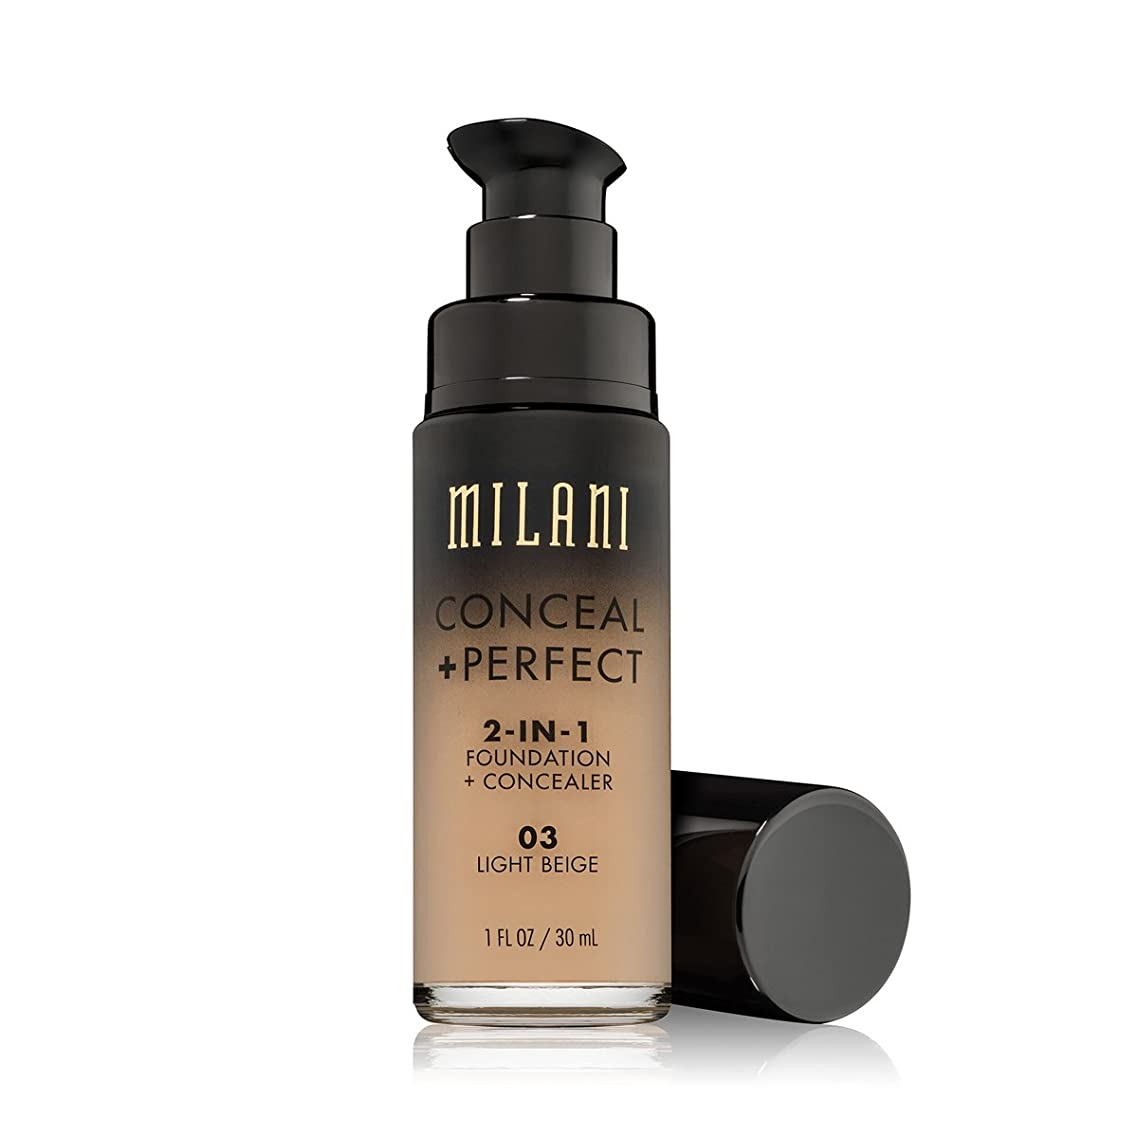 つかの間ぶら下がる廃棄MILANI Conceal + Perfect 2-In-1 Foundation + Concealer - Light Beige (並行輸入品)